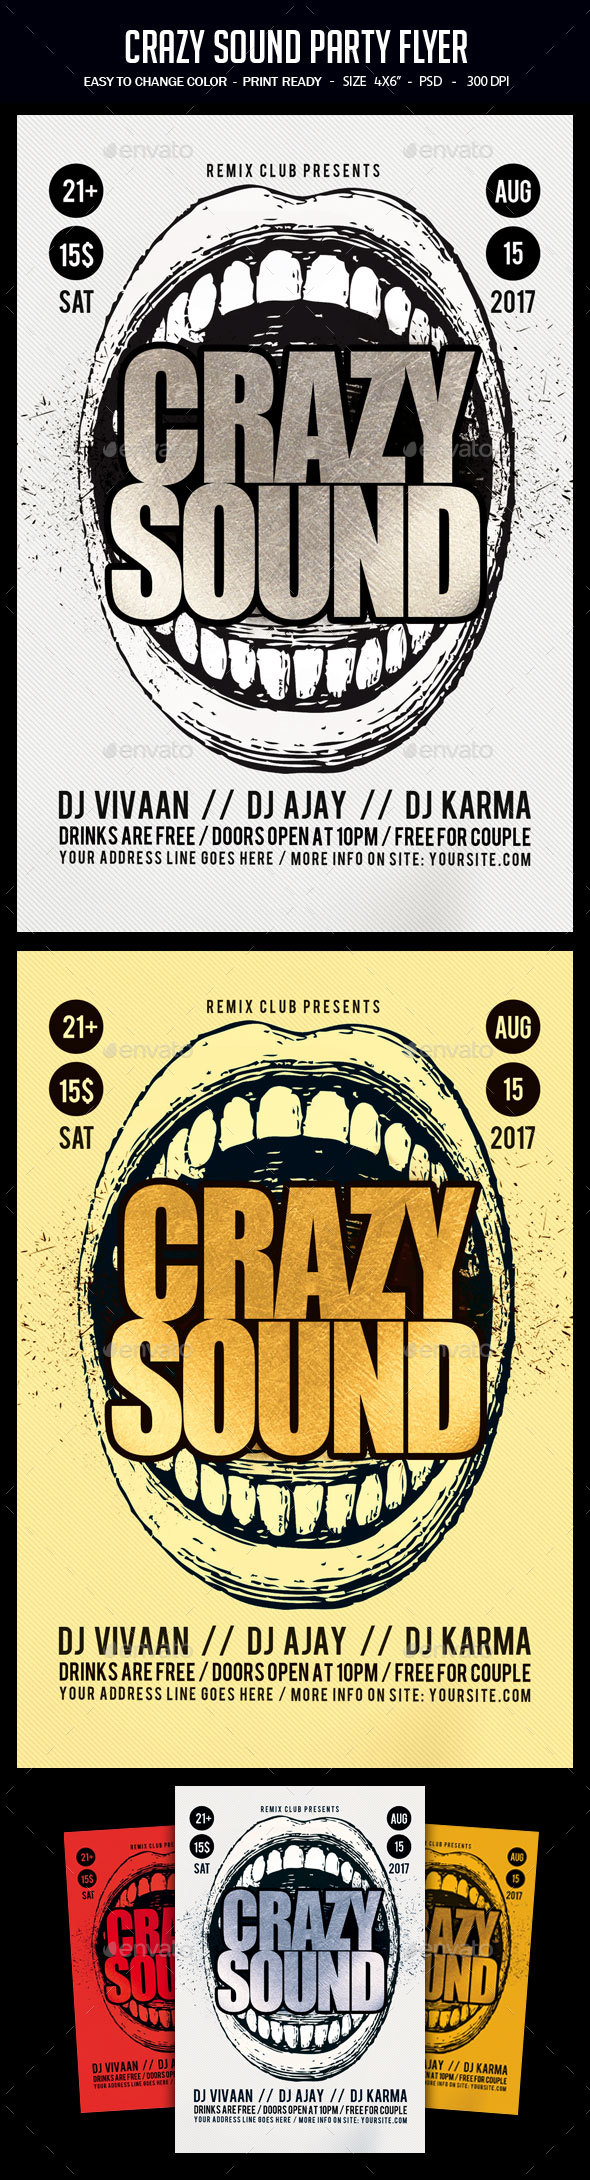 Crazy Sound Party Flyer - Clubs & Parties Events